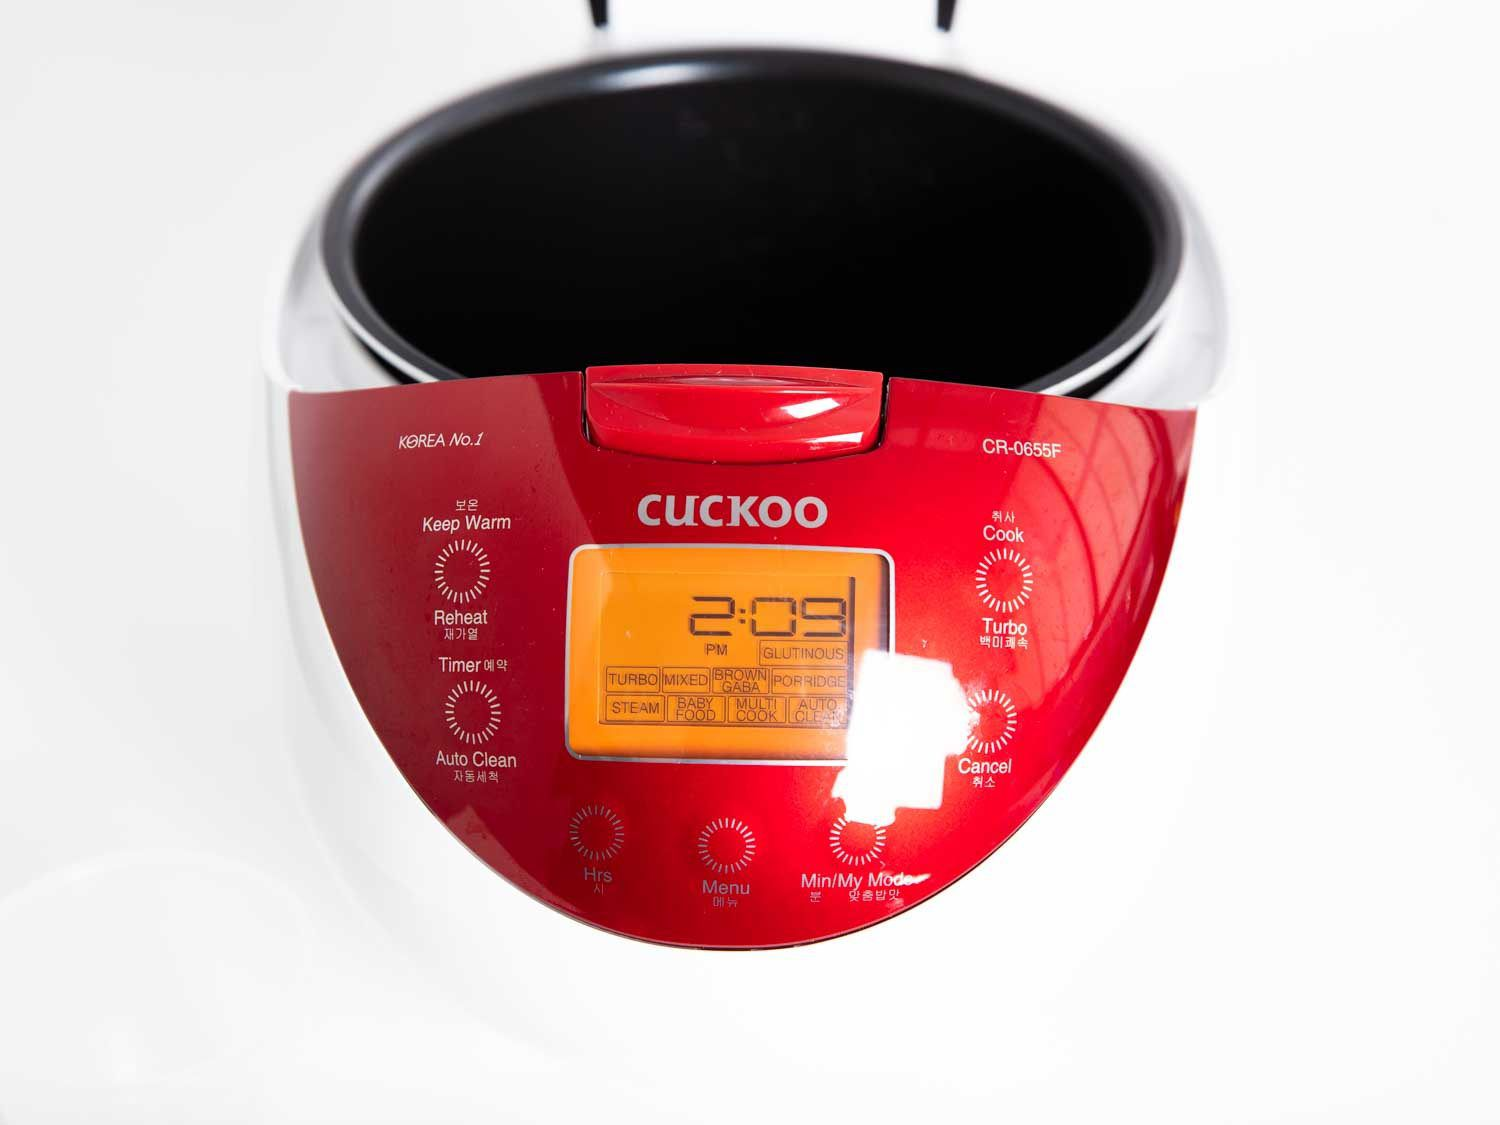 Close up view of control panel on Cuckoo CR 0655f rice cooker